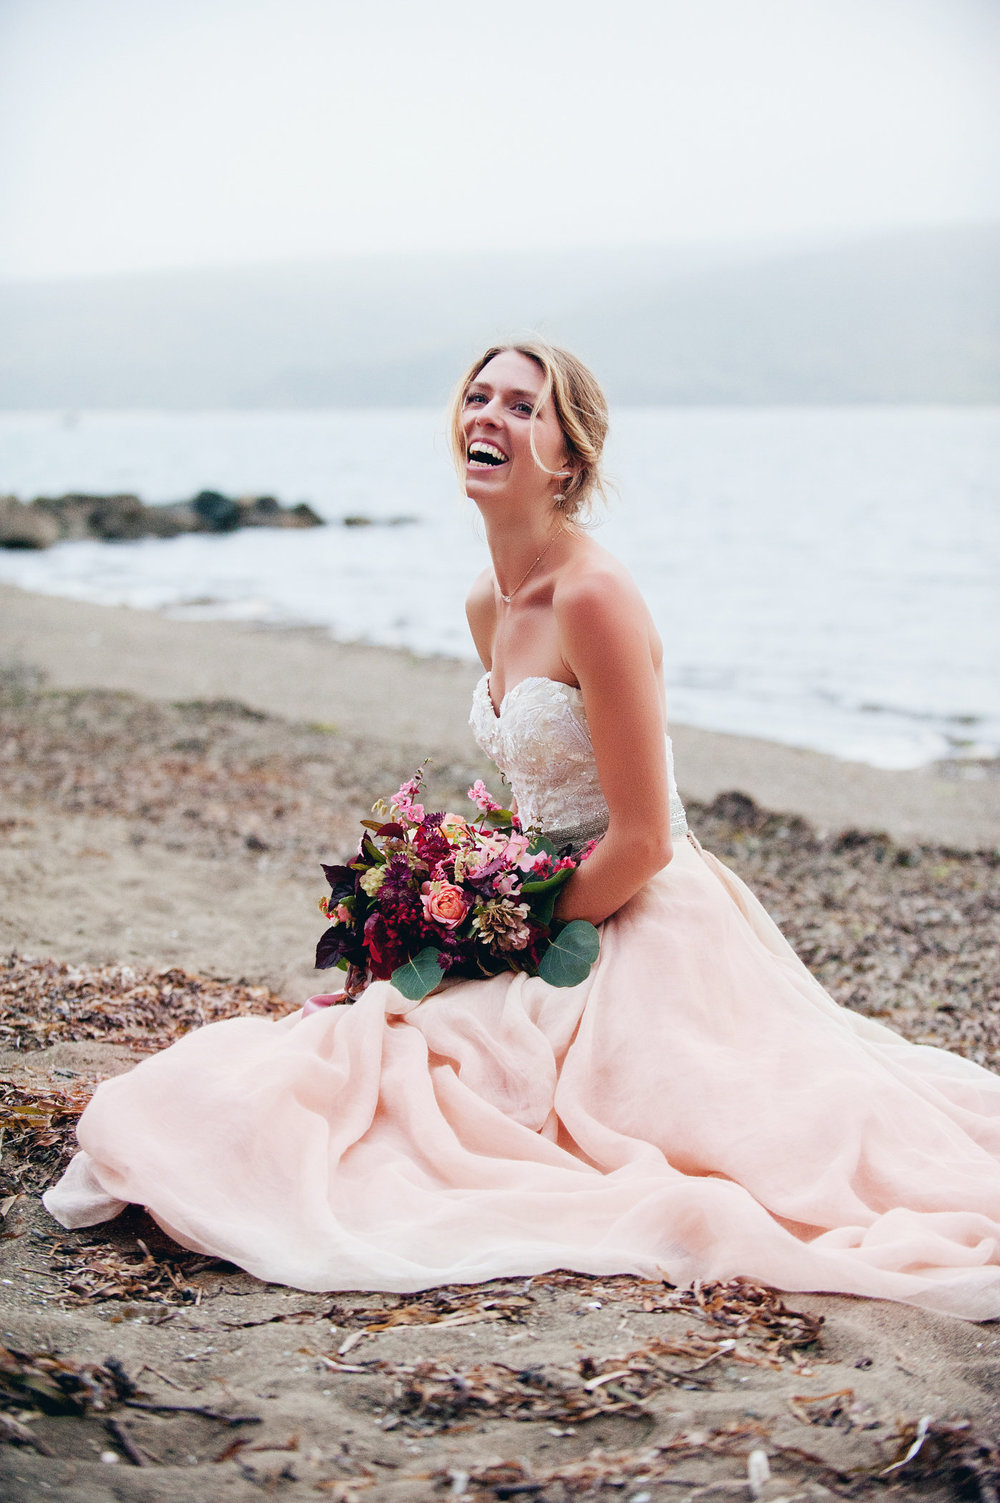 Carol Hannah Bridal Tritea, Kensington, Sequin Smoking Jacket Silver Linings Veil2061.jpg